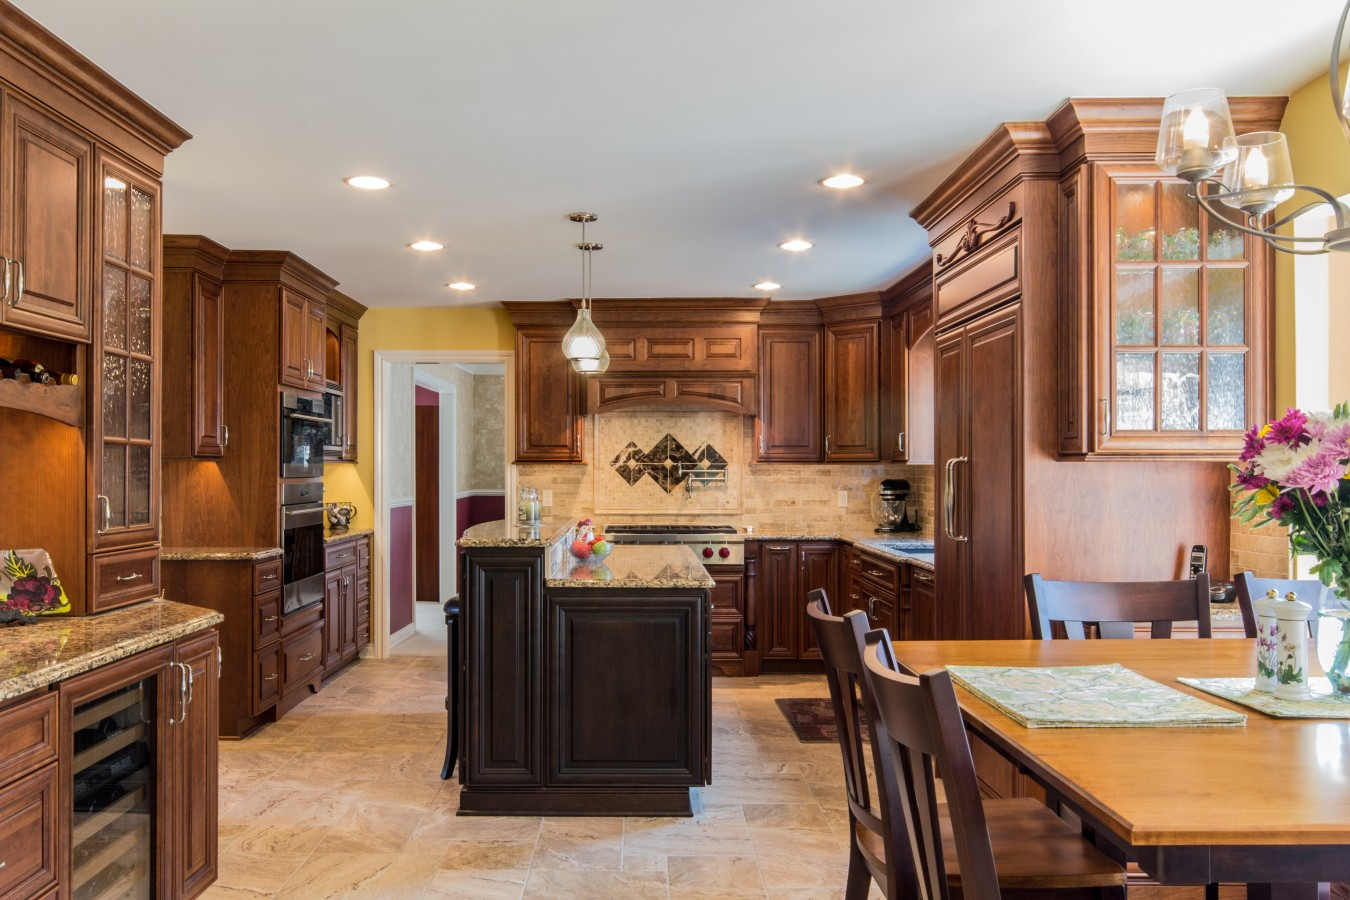 Dream Kitchens Dream Kitchens  South Eastern Michigan's Premiere Kitchen Design Firm